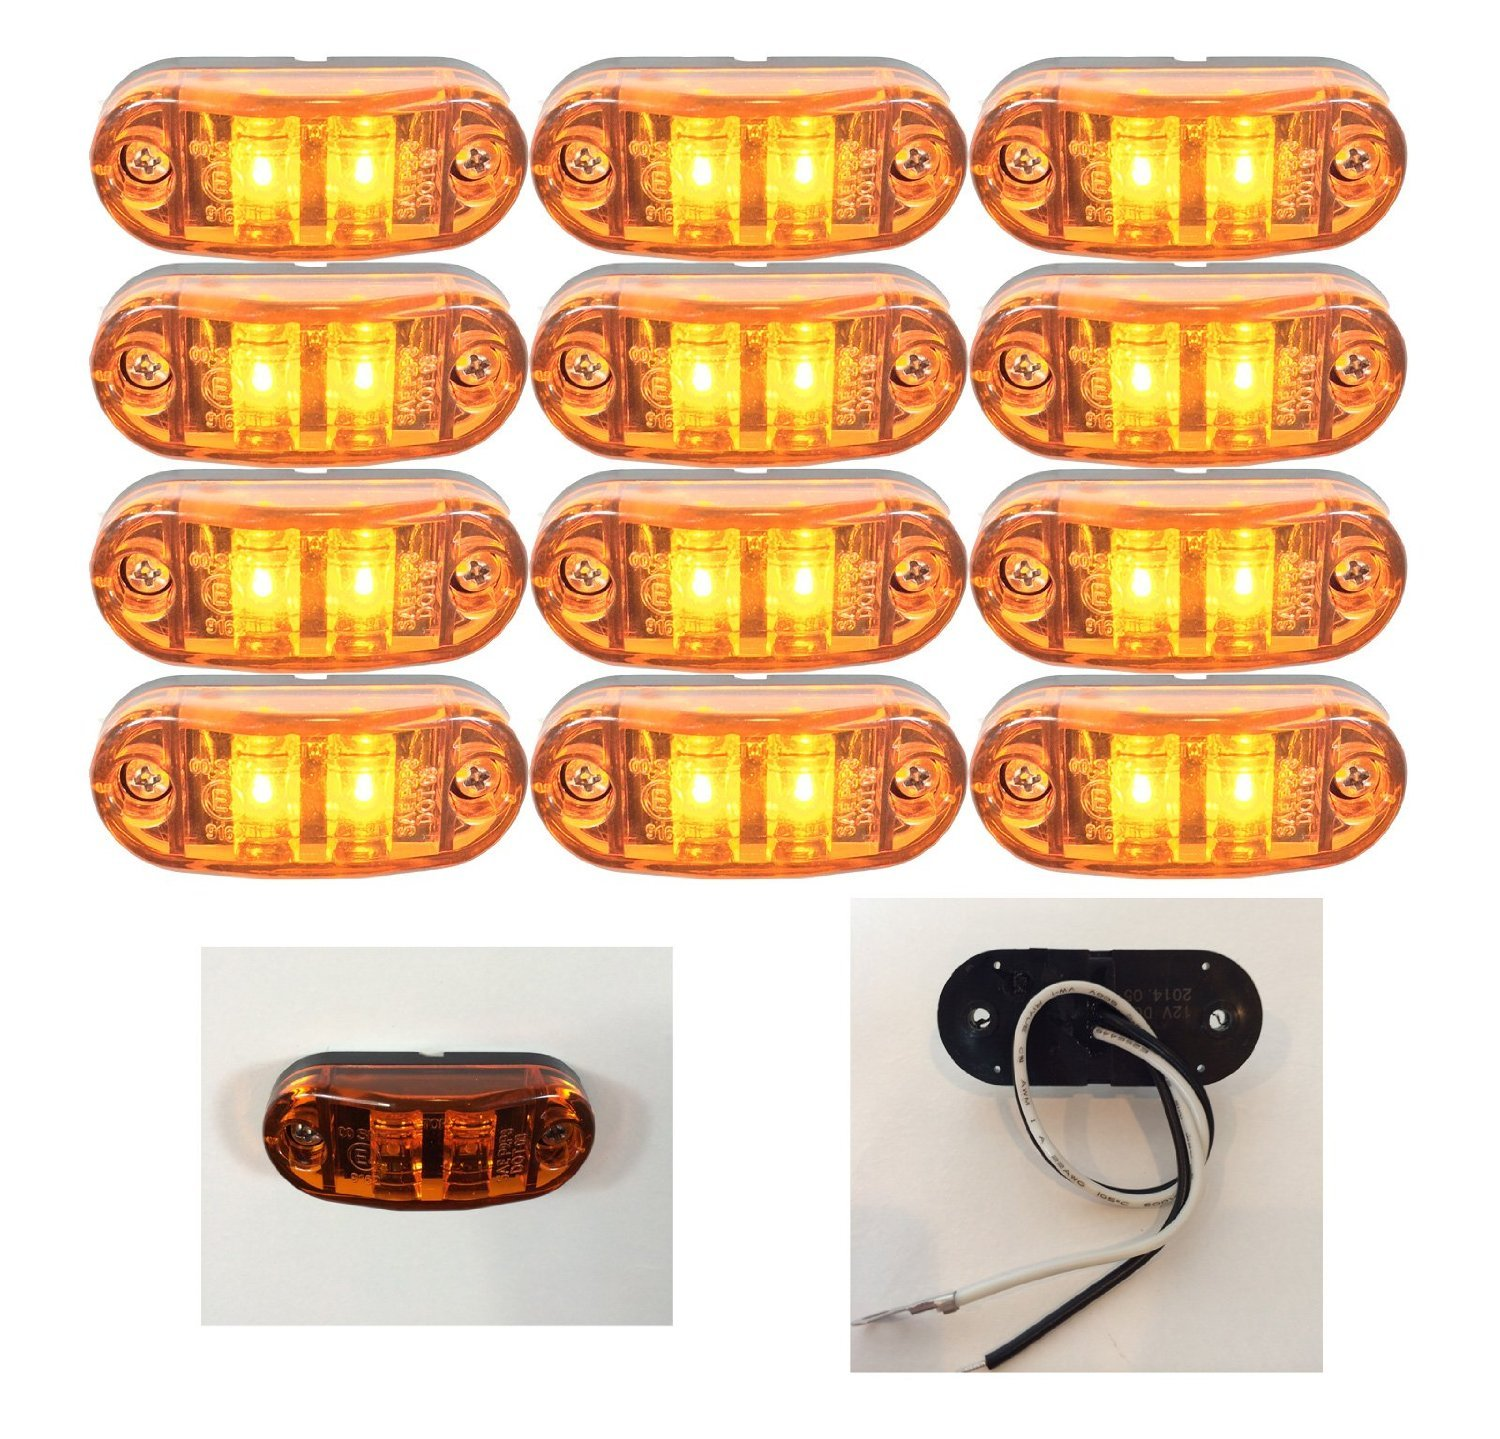 Zxlight® 2.6''x1'' RED Surface Mount LED Clearance Marker Lights 12v for Trucks Campers Trailers Rvs (24, Amber)